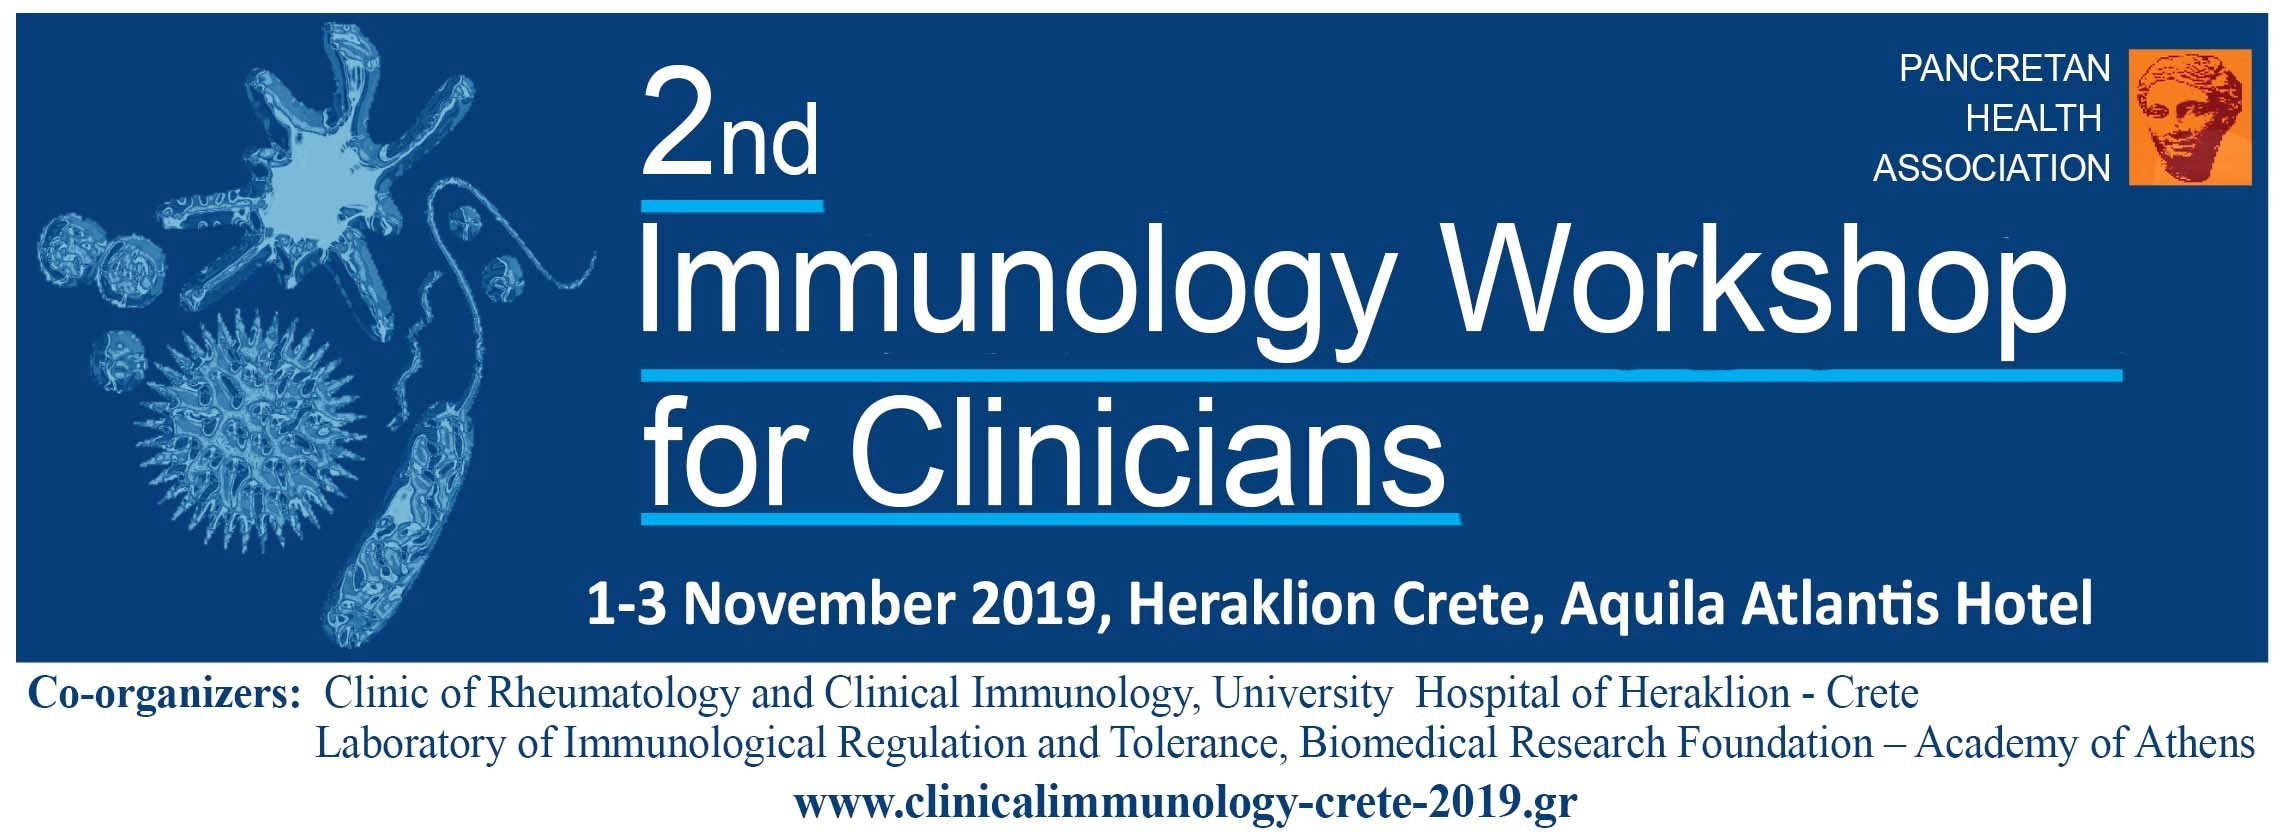 2nd immunology workshop